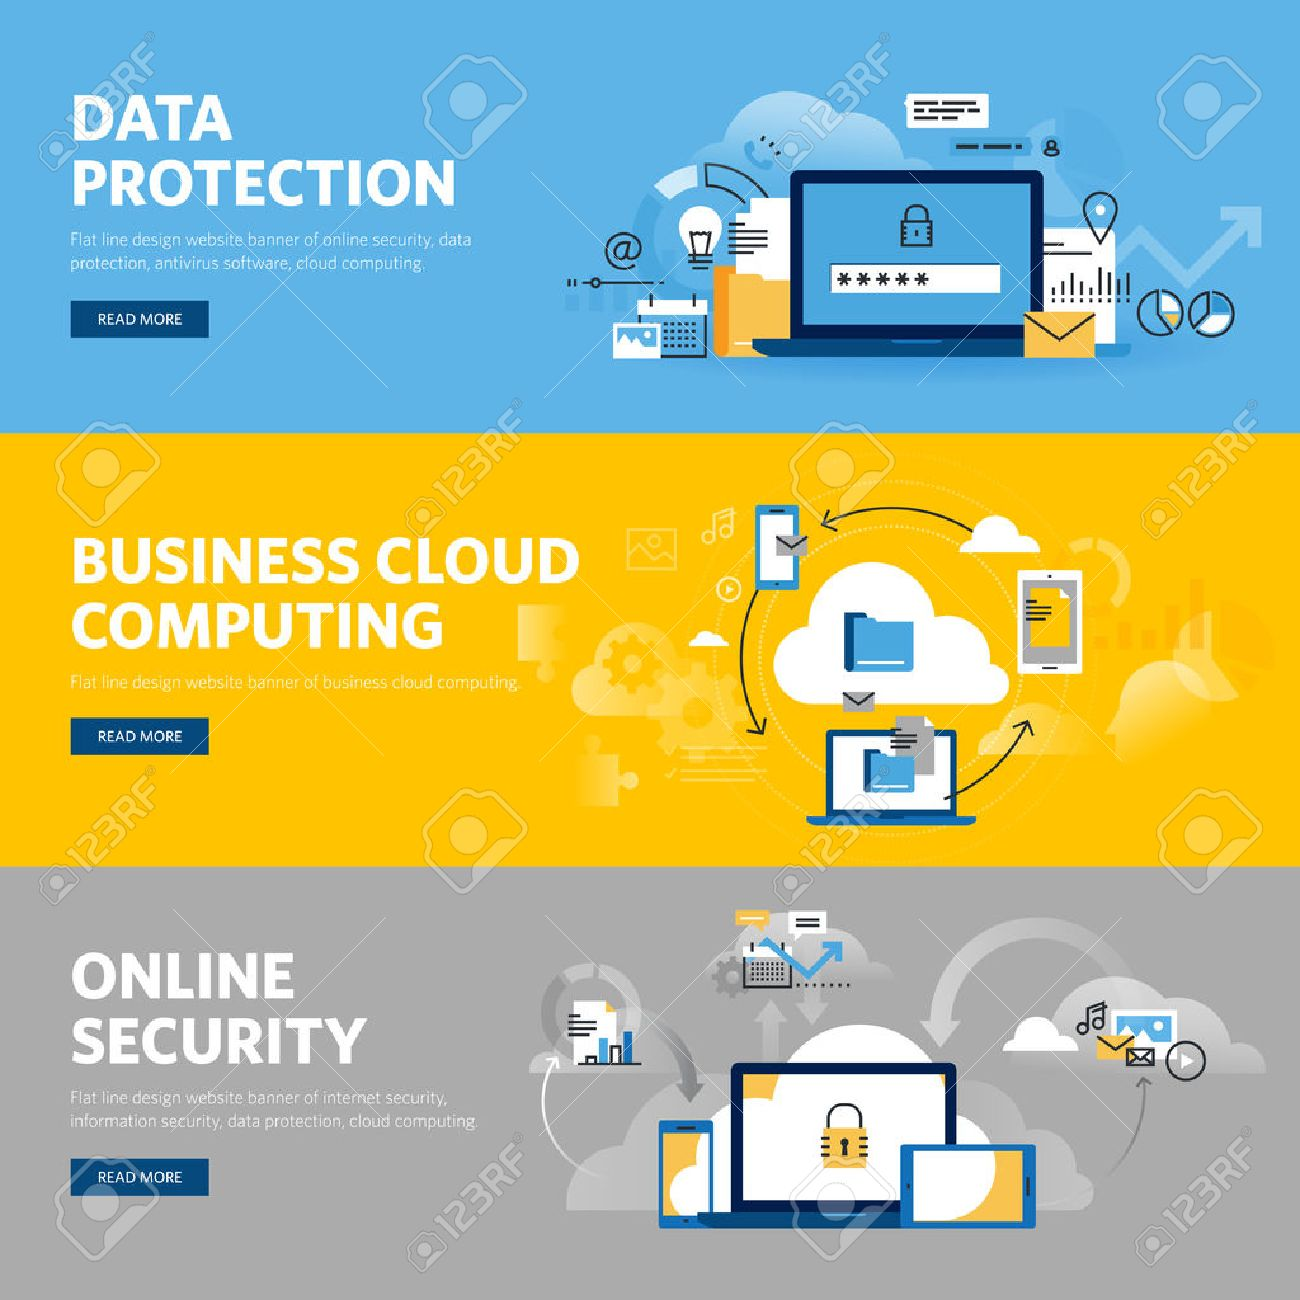 Set of flat line design web banners for data protection, internet security, antivirus software and services, business cloud computing. Vector illustration concepts for web design, marketing, and graphic design. Stock Vector - 54614319